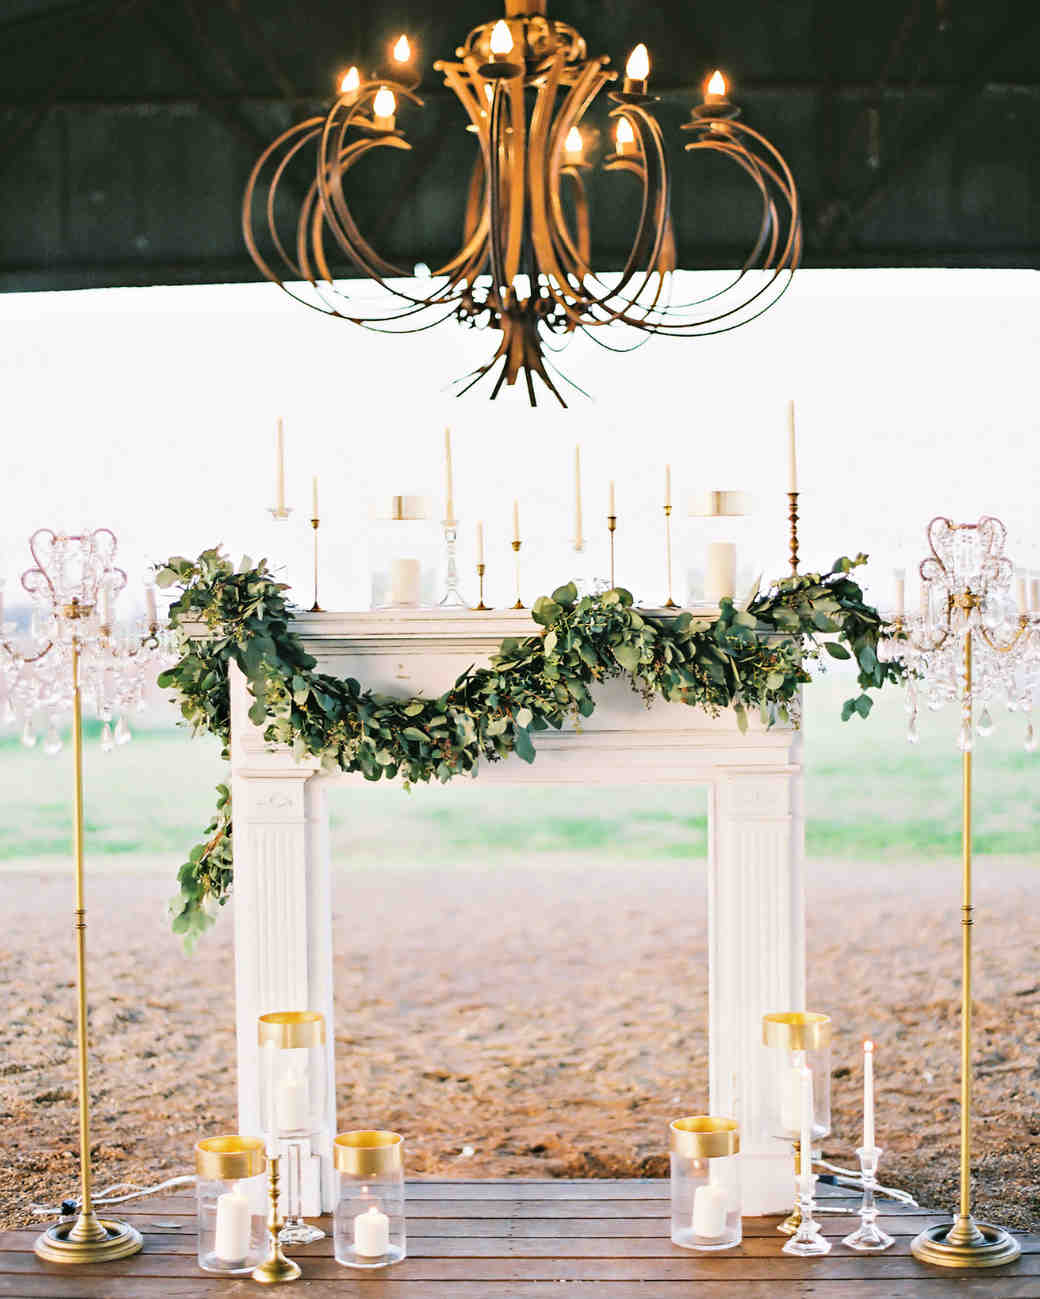 Aisle with mantel